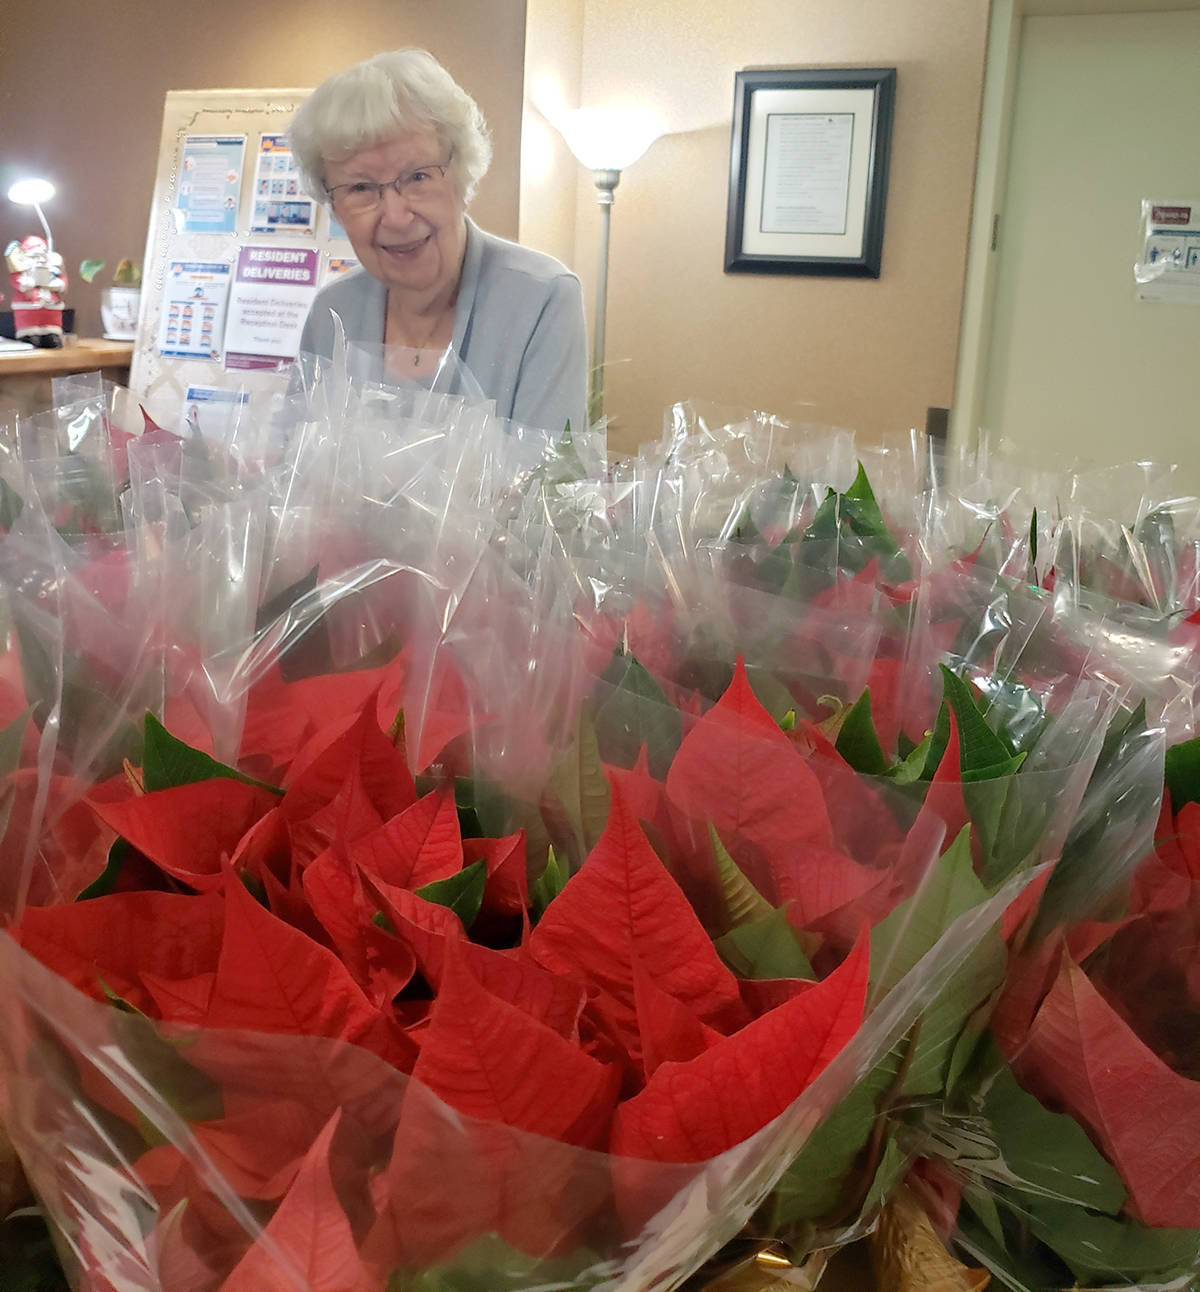 Poinsettias were delivered to the residents of Chartwell Langley Gardens. (Jessie Vander Eyk/Special to the Langley Adavnce Times)